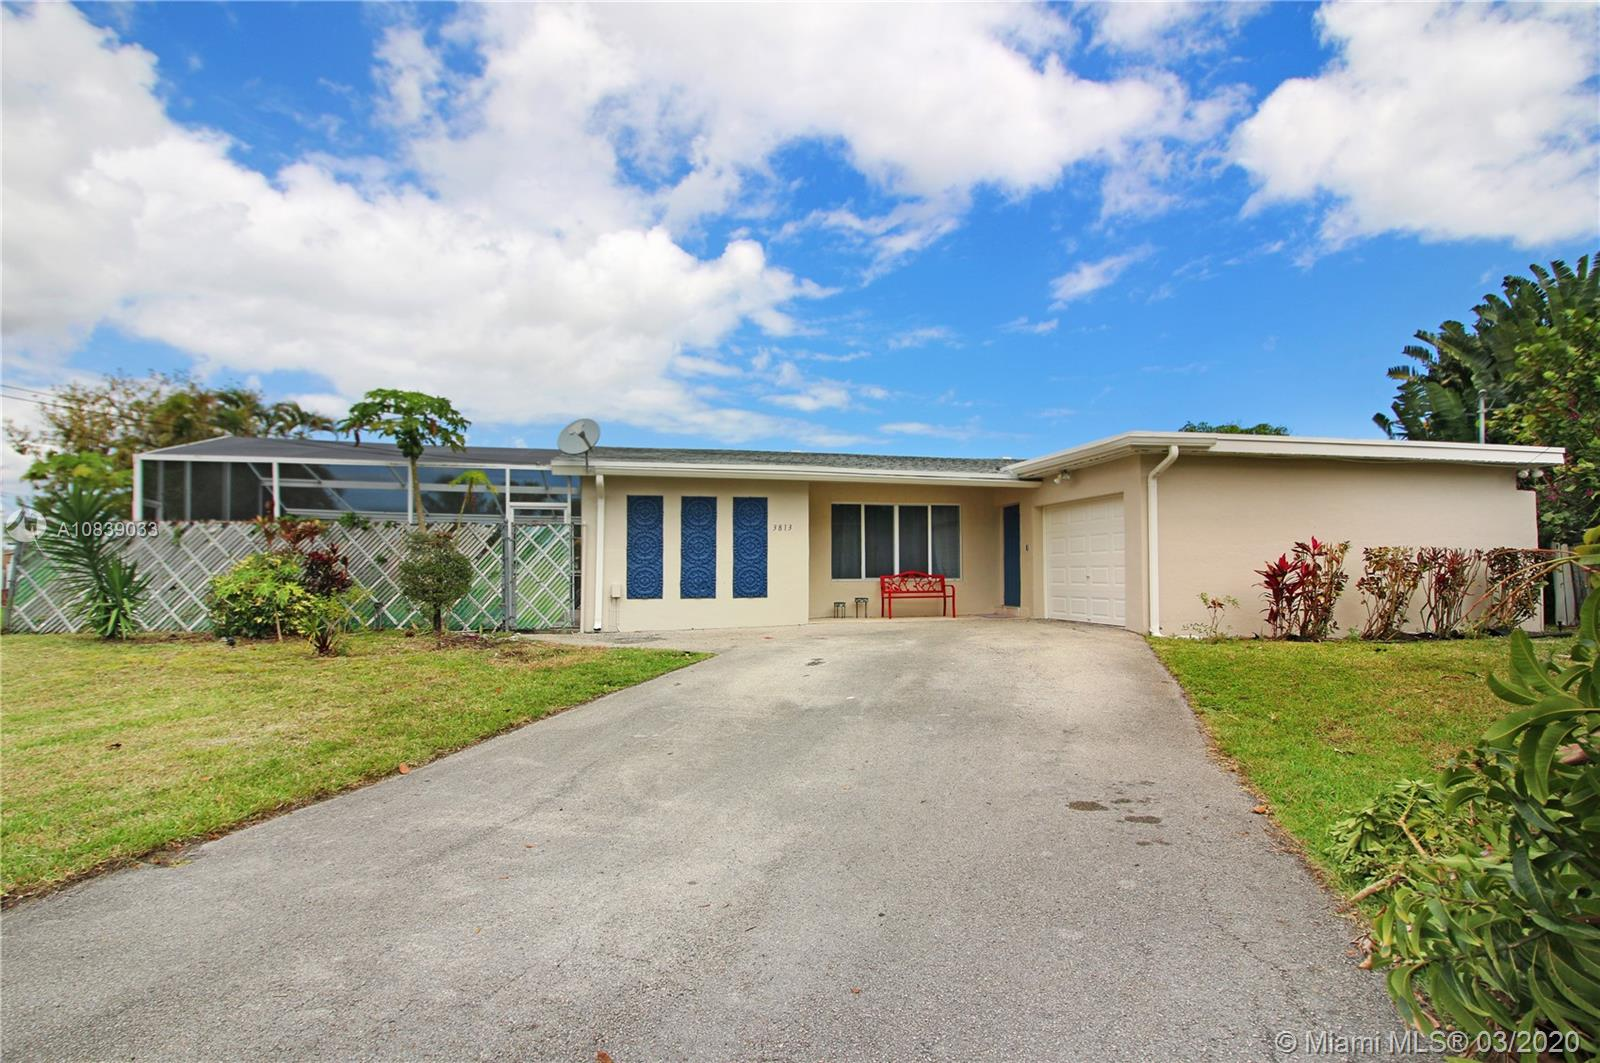 3813 S Lake Ter, Miramar, Florida 33023, 3 Bedrooms Bedrooms, ,2 BathroomsBathrooms,Residential,For Sale,3813 S Lake Ter,A10839033